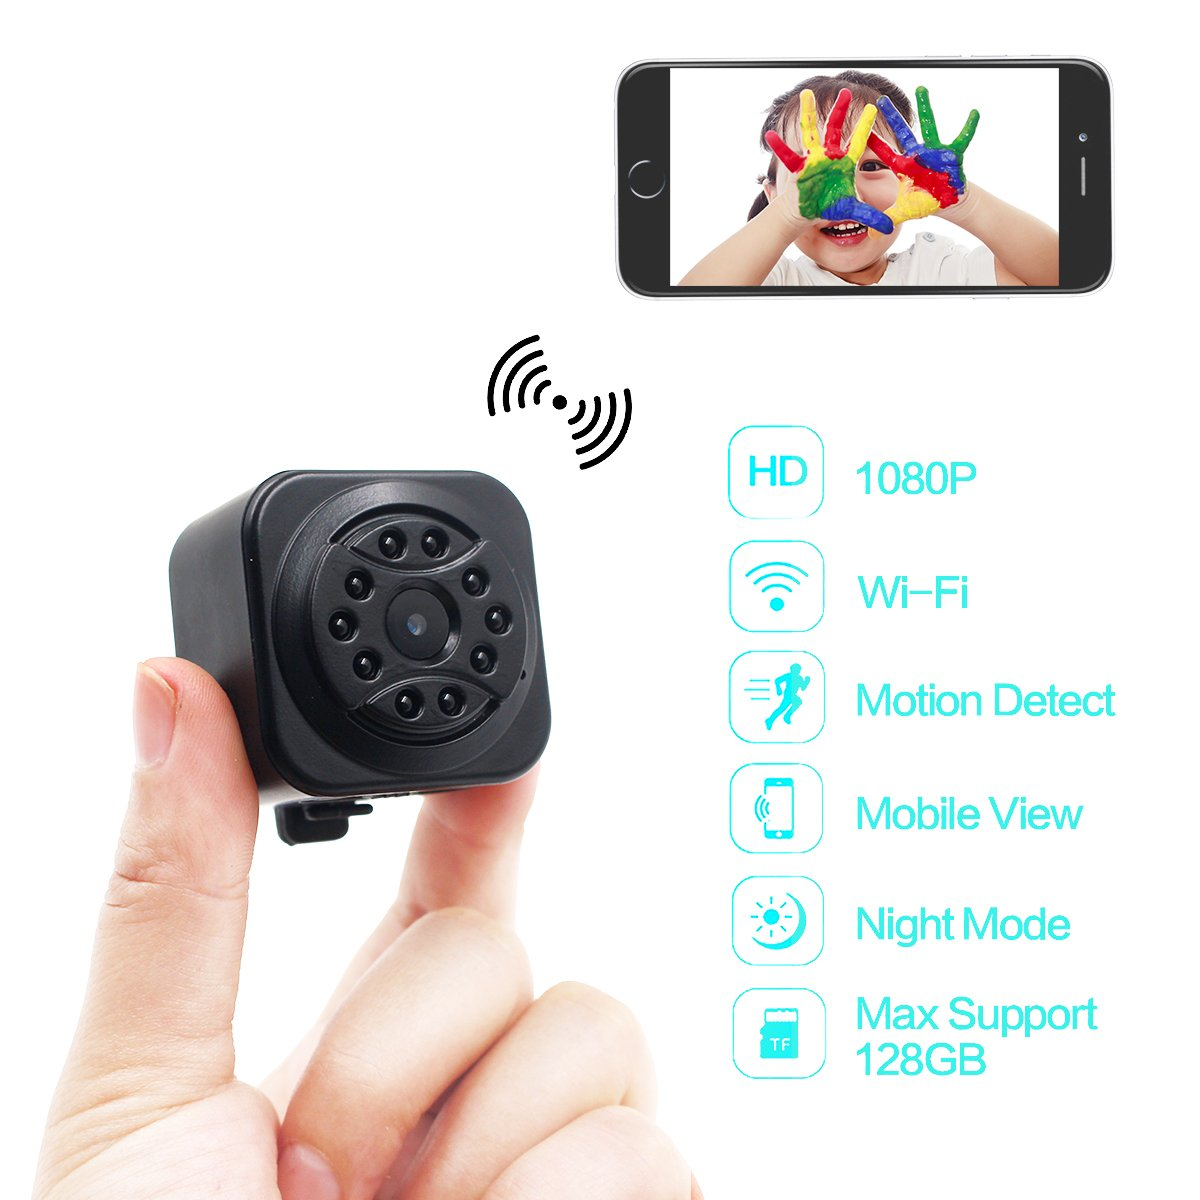 DareTang 1080p Mini Size Wireless Camera,Small Wifi Hidden Camera for iPhone/Android Phone/iPad Remote View with Motion Detection,10pcs Ir Super Night Vision